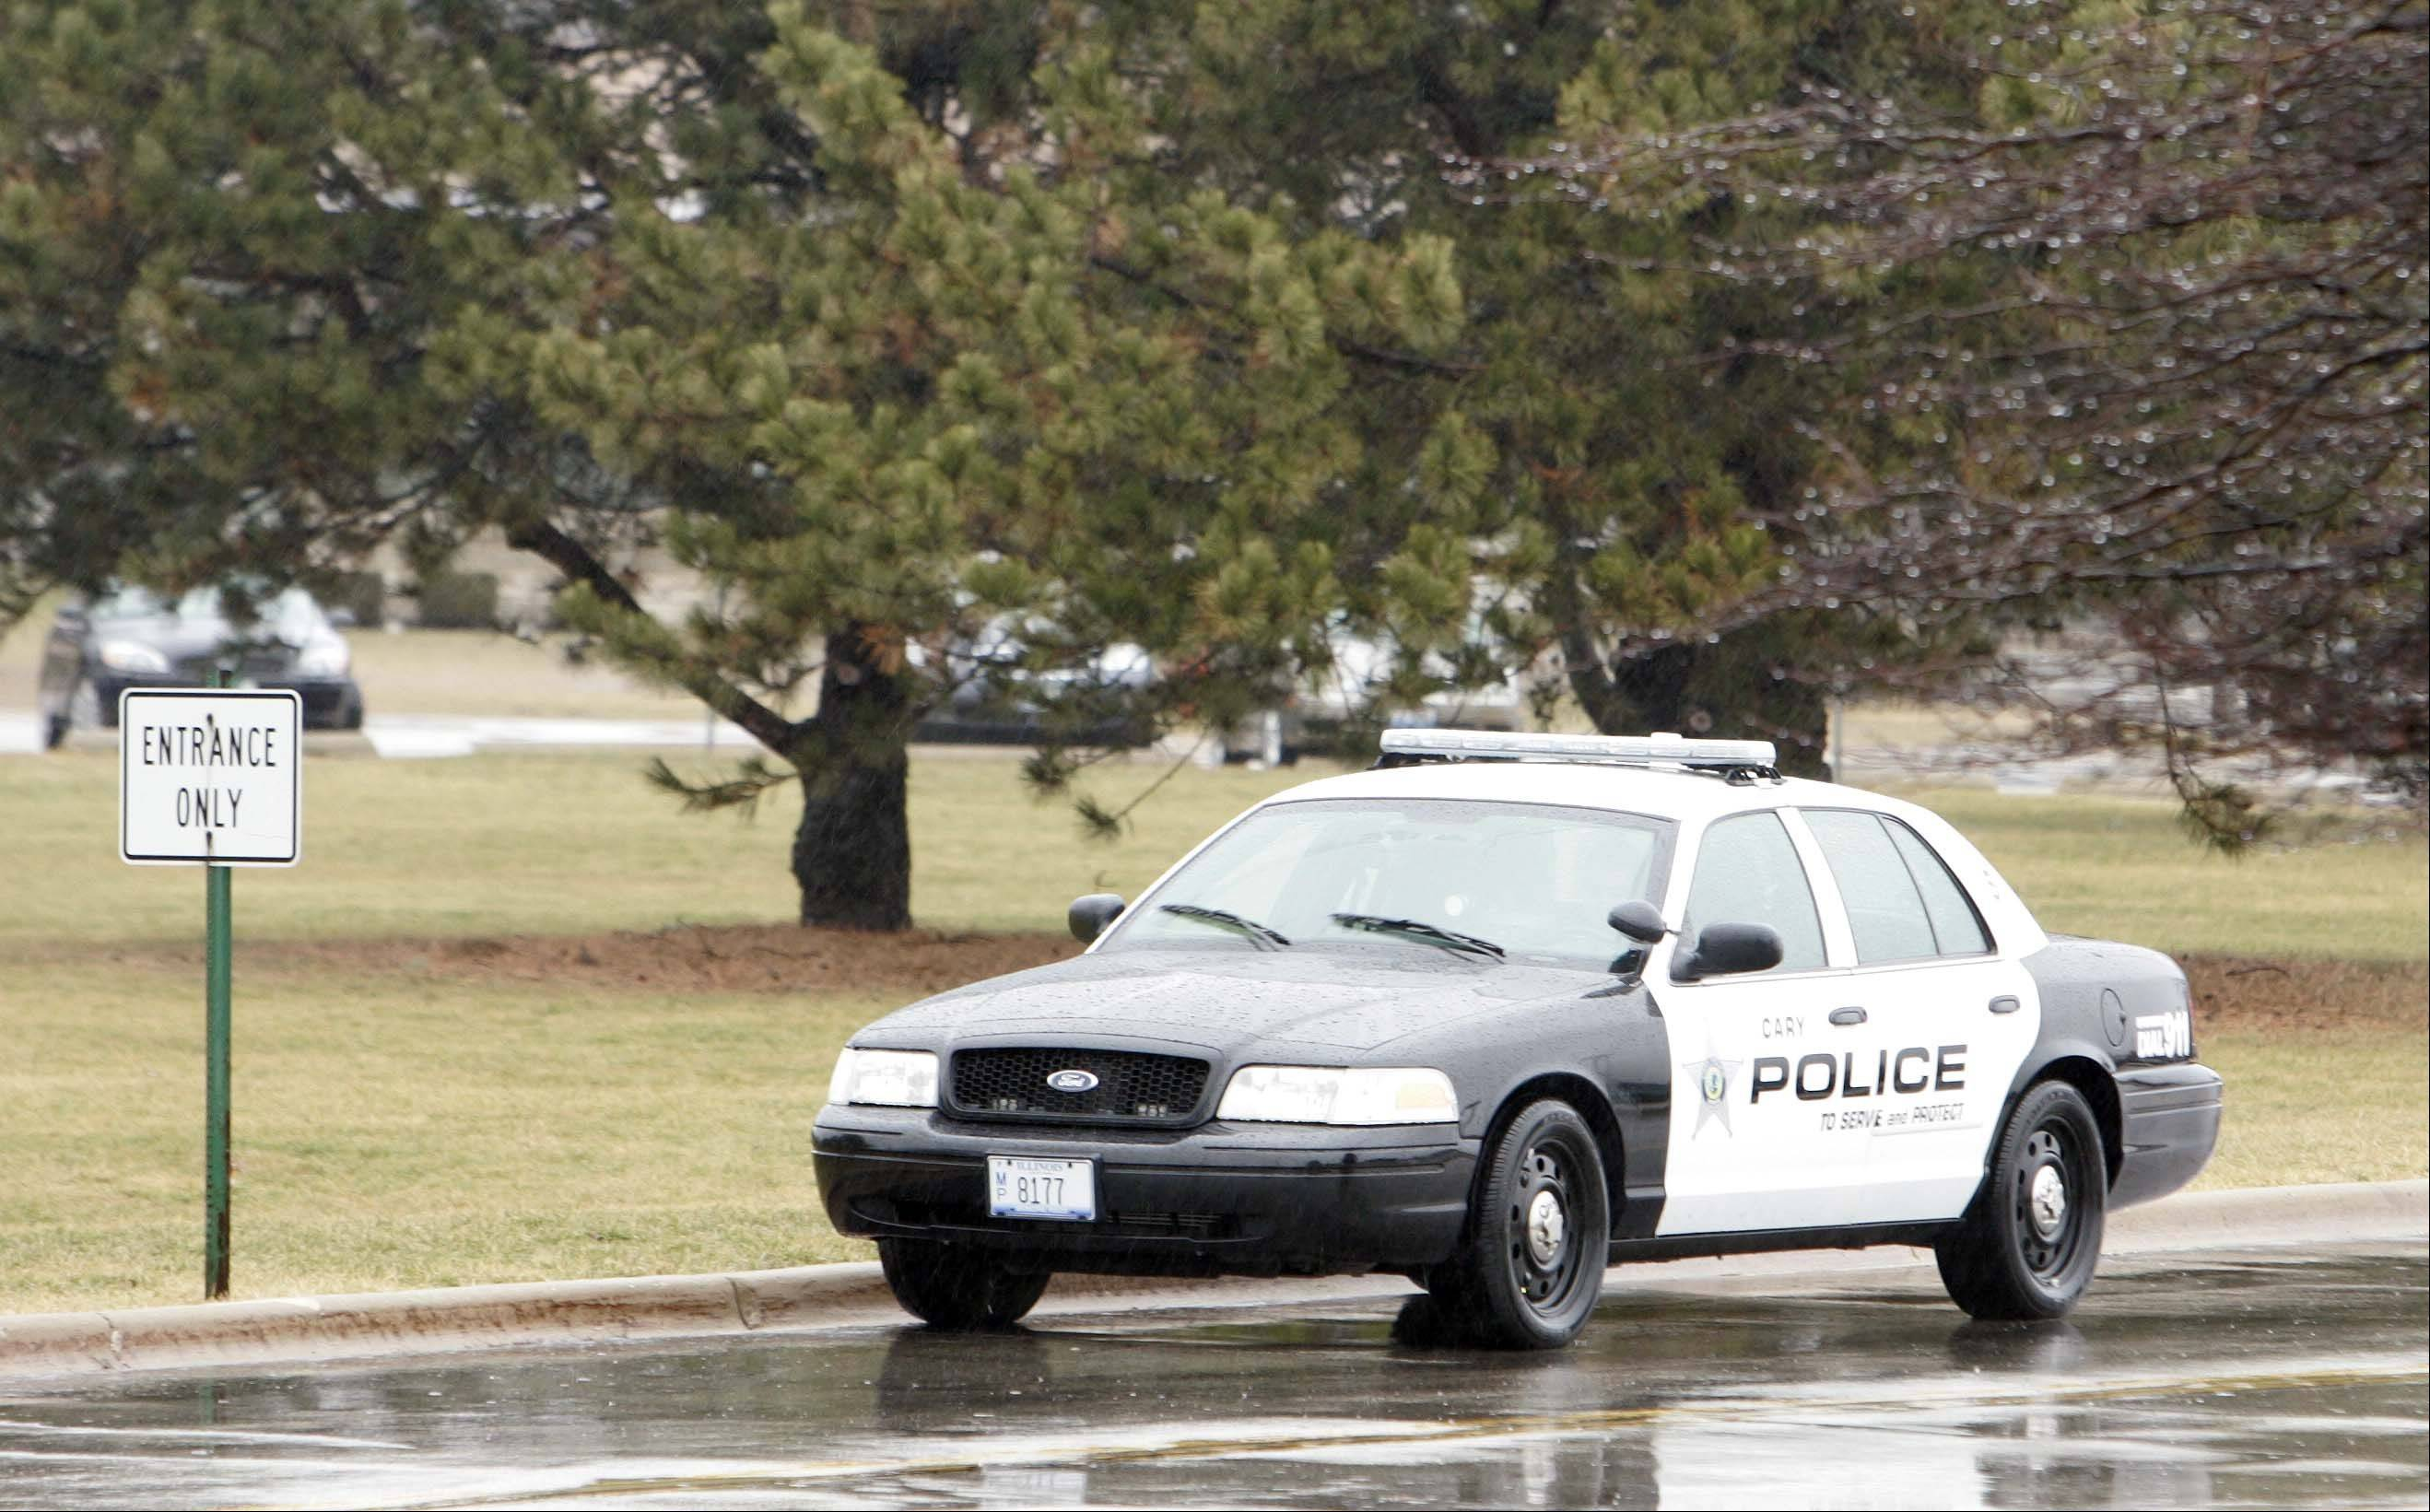 A Cary police squad car secures entry to the Cary-Grove High School campus Wednesday morning as a code red �lockdown� safety drill involving simulated gunshots took place.